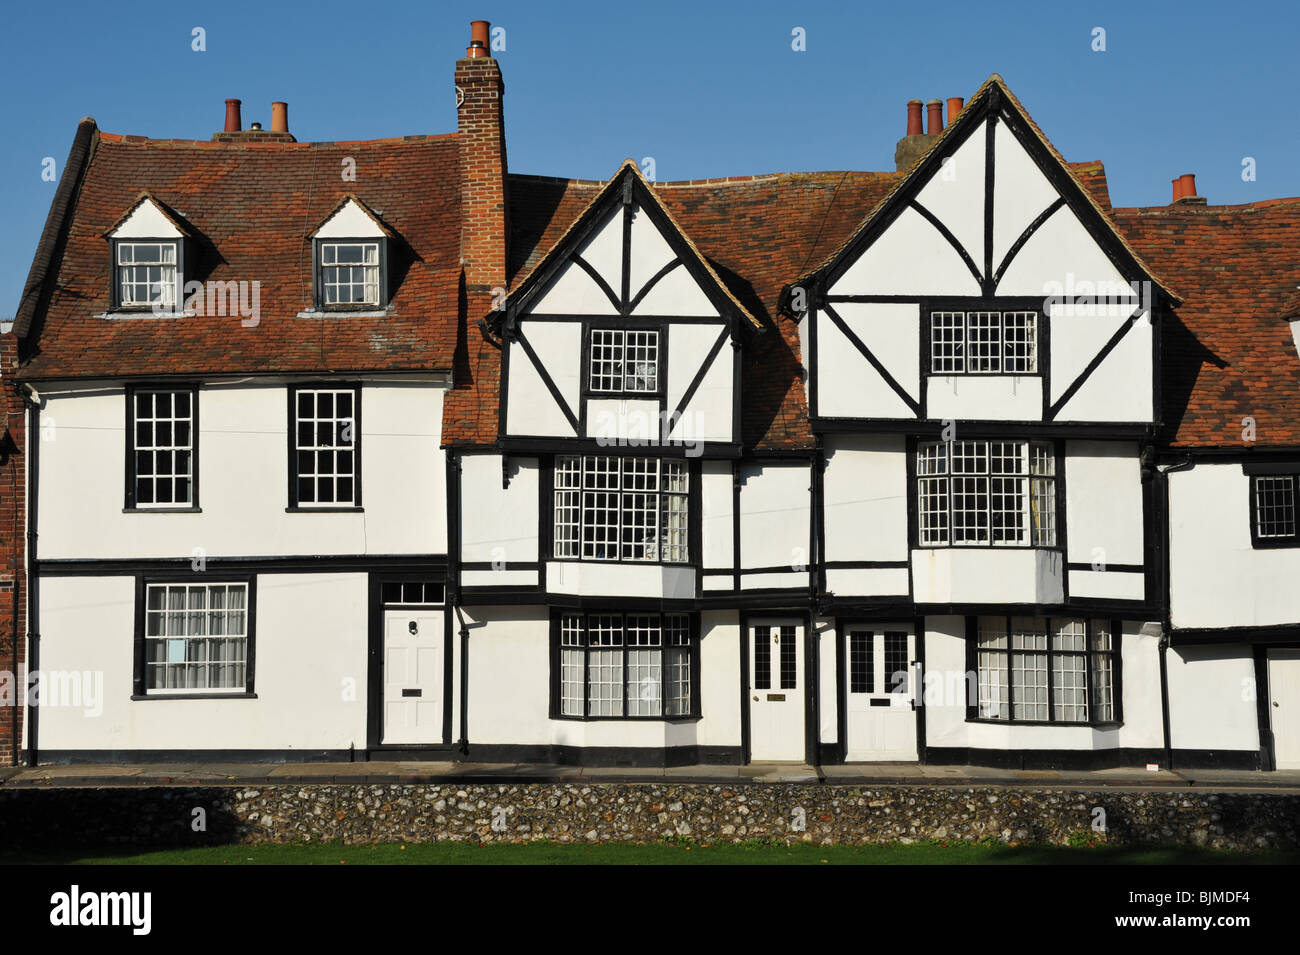 A row of terraced Tudor buildings in Canterbury, Kent, United Kingdom - Stock Image